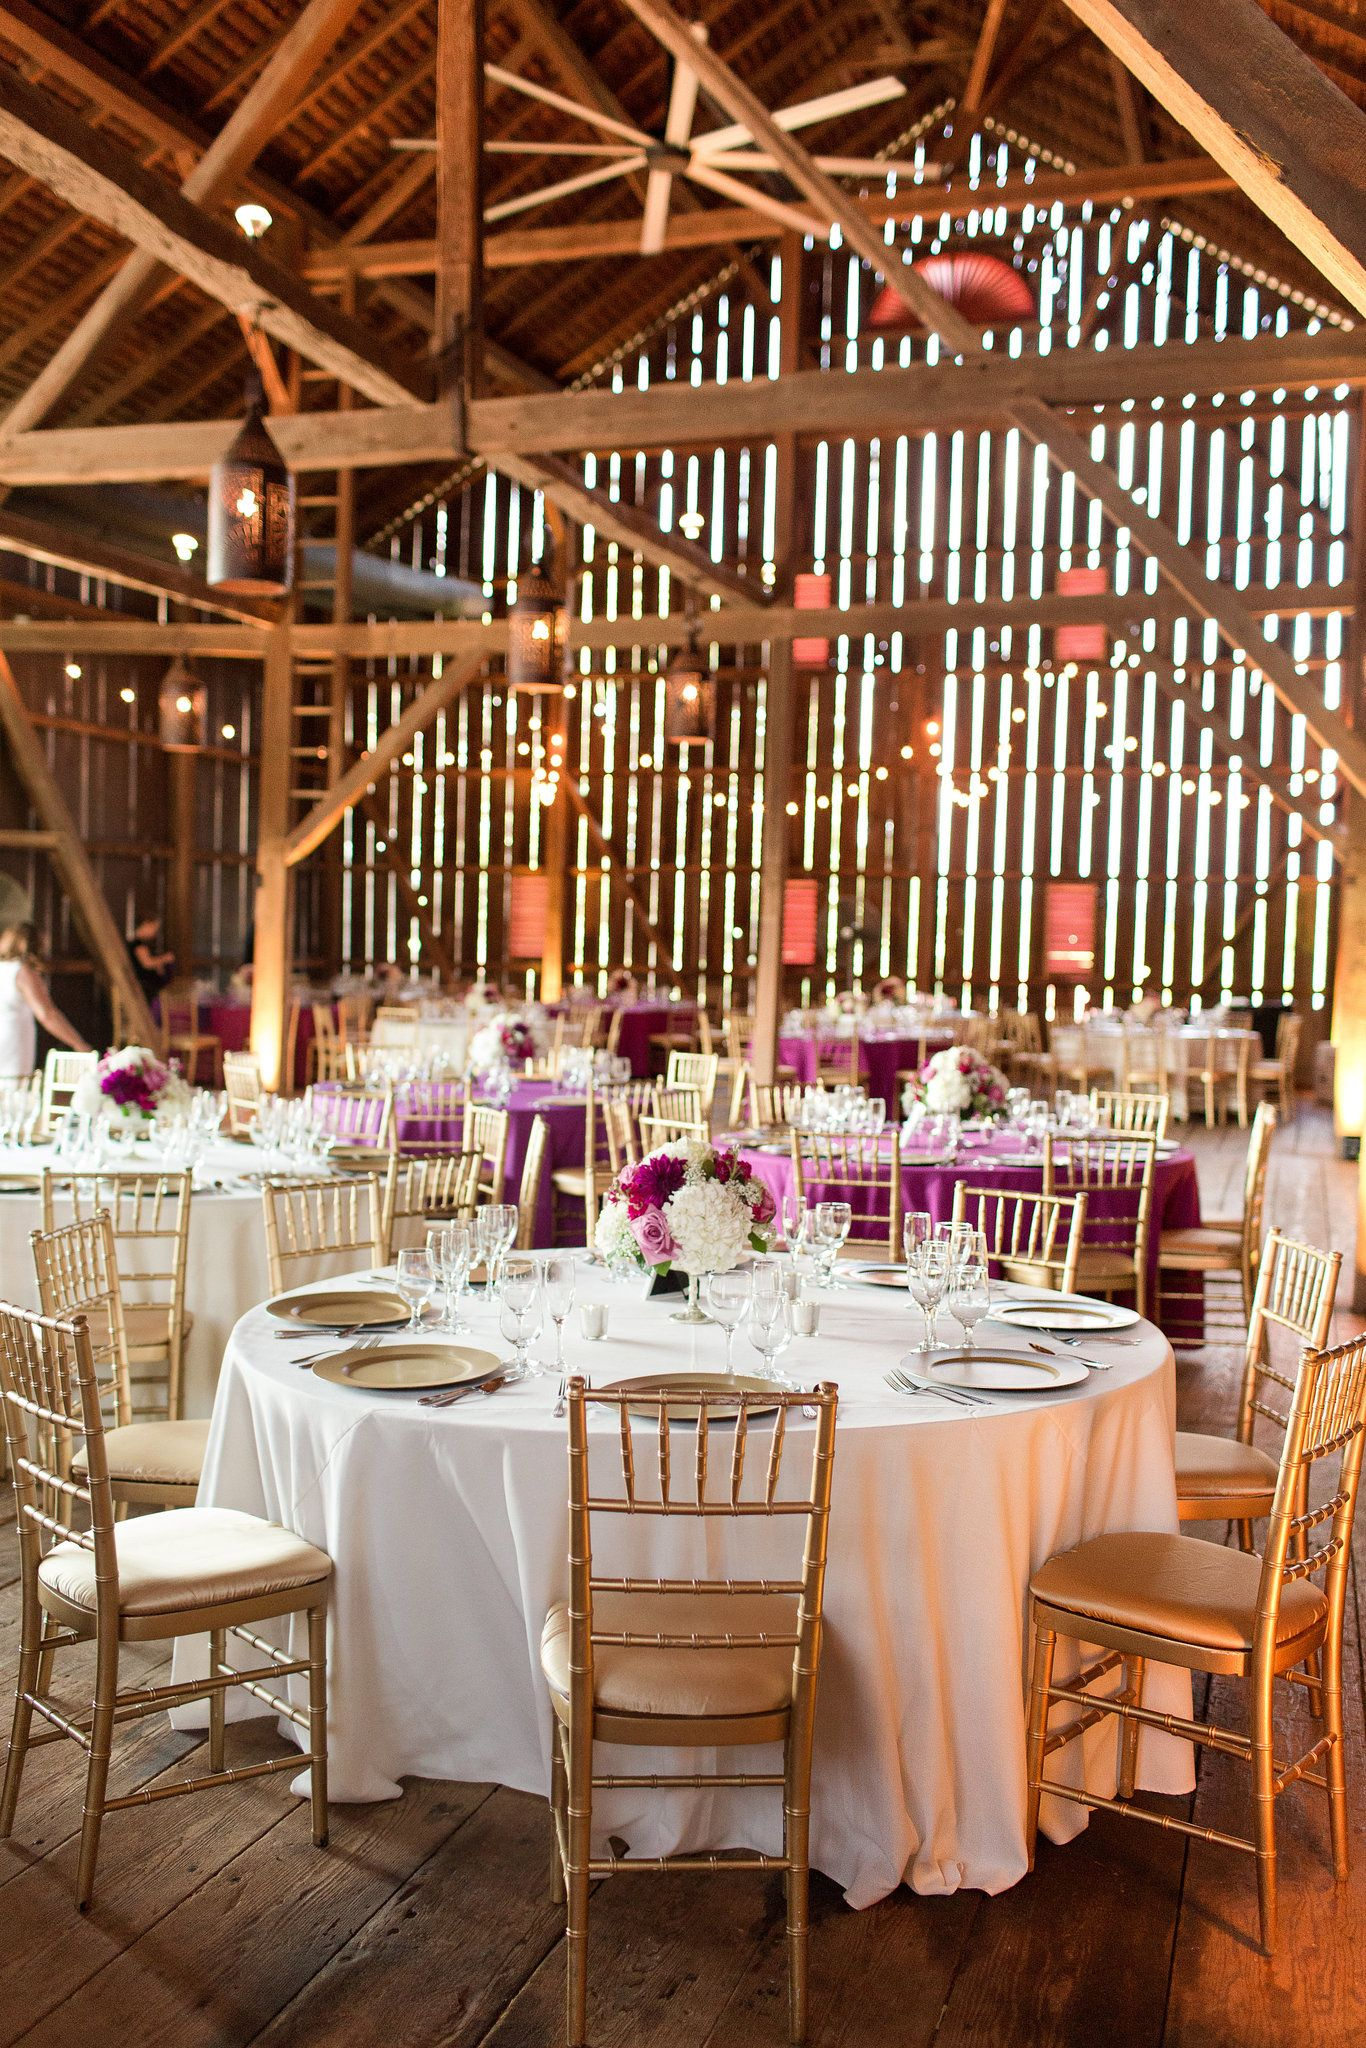 Barn Wedding Reception Rustic DC Venue Outdoor Country Inspired Black Tie